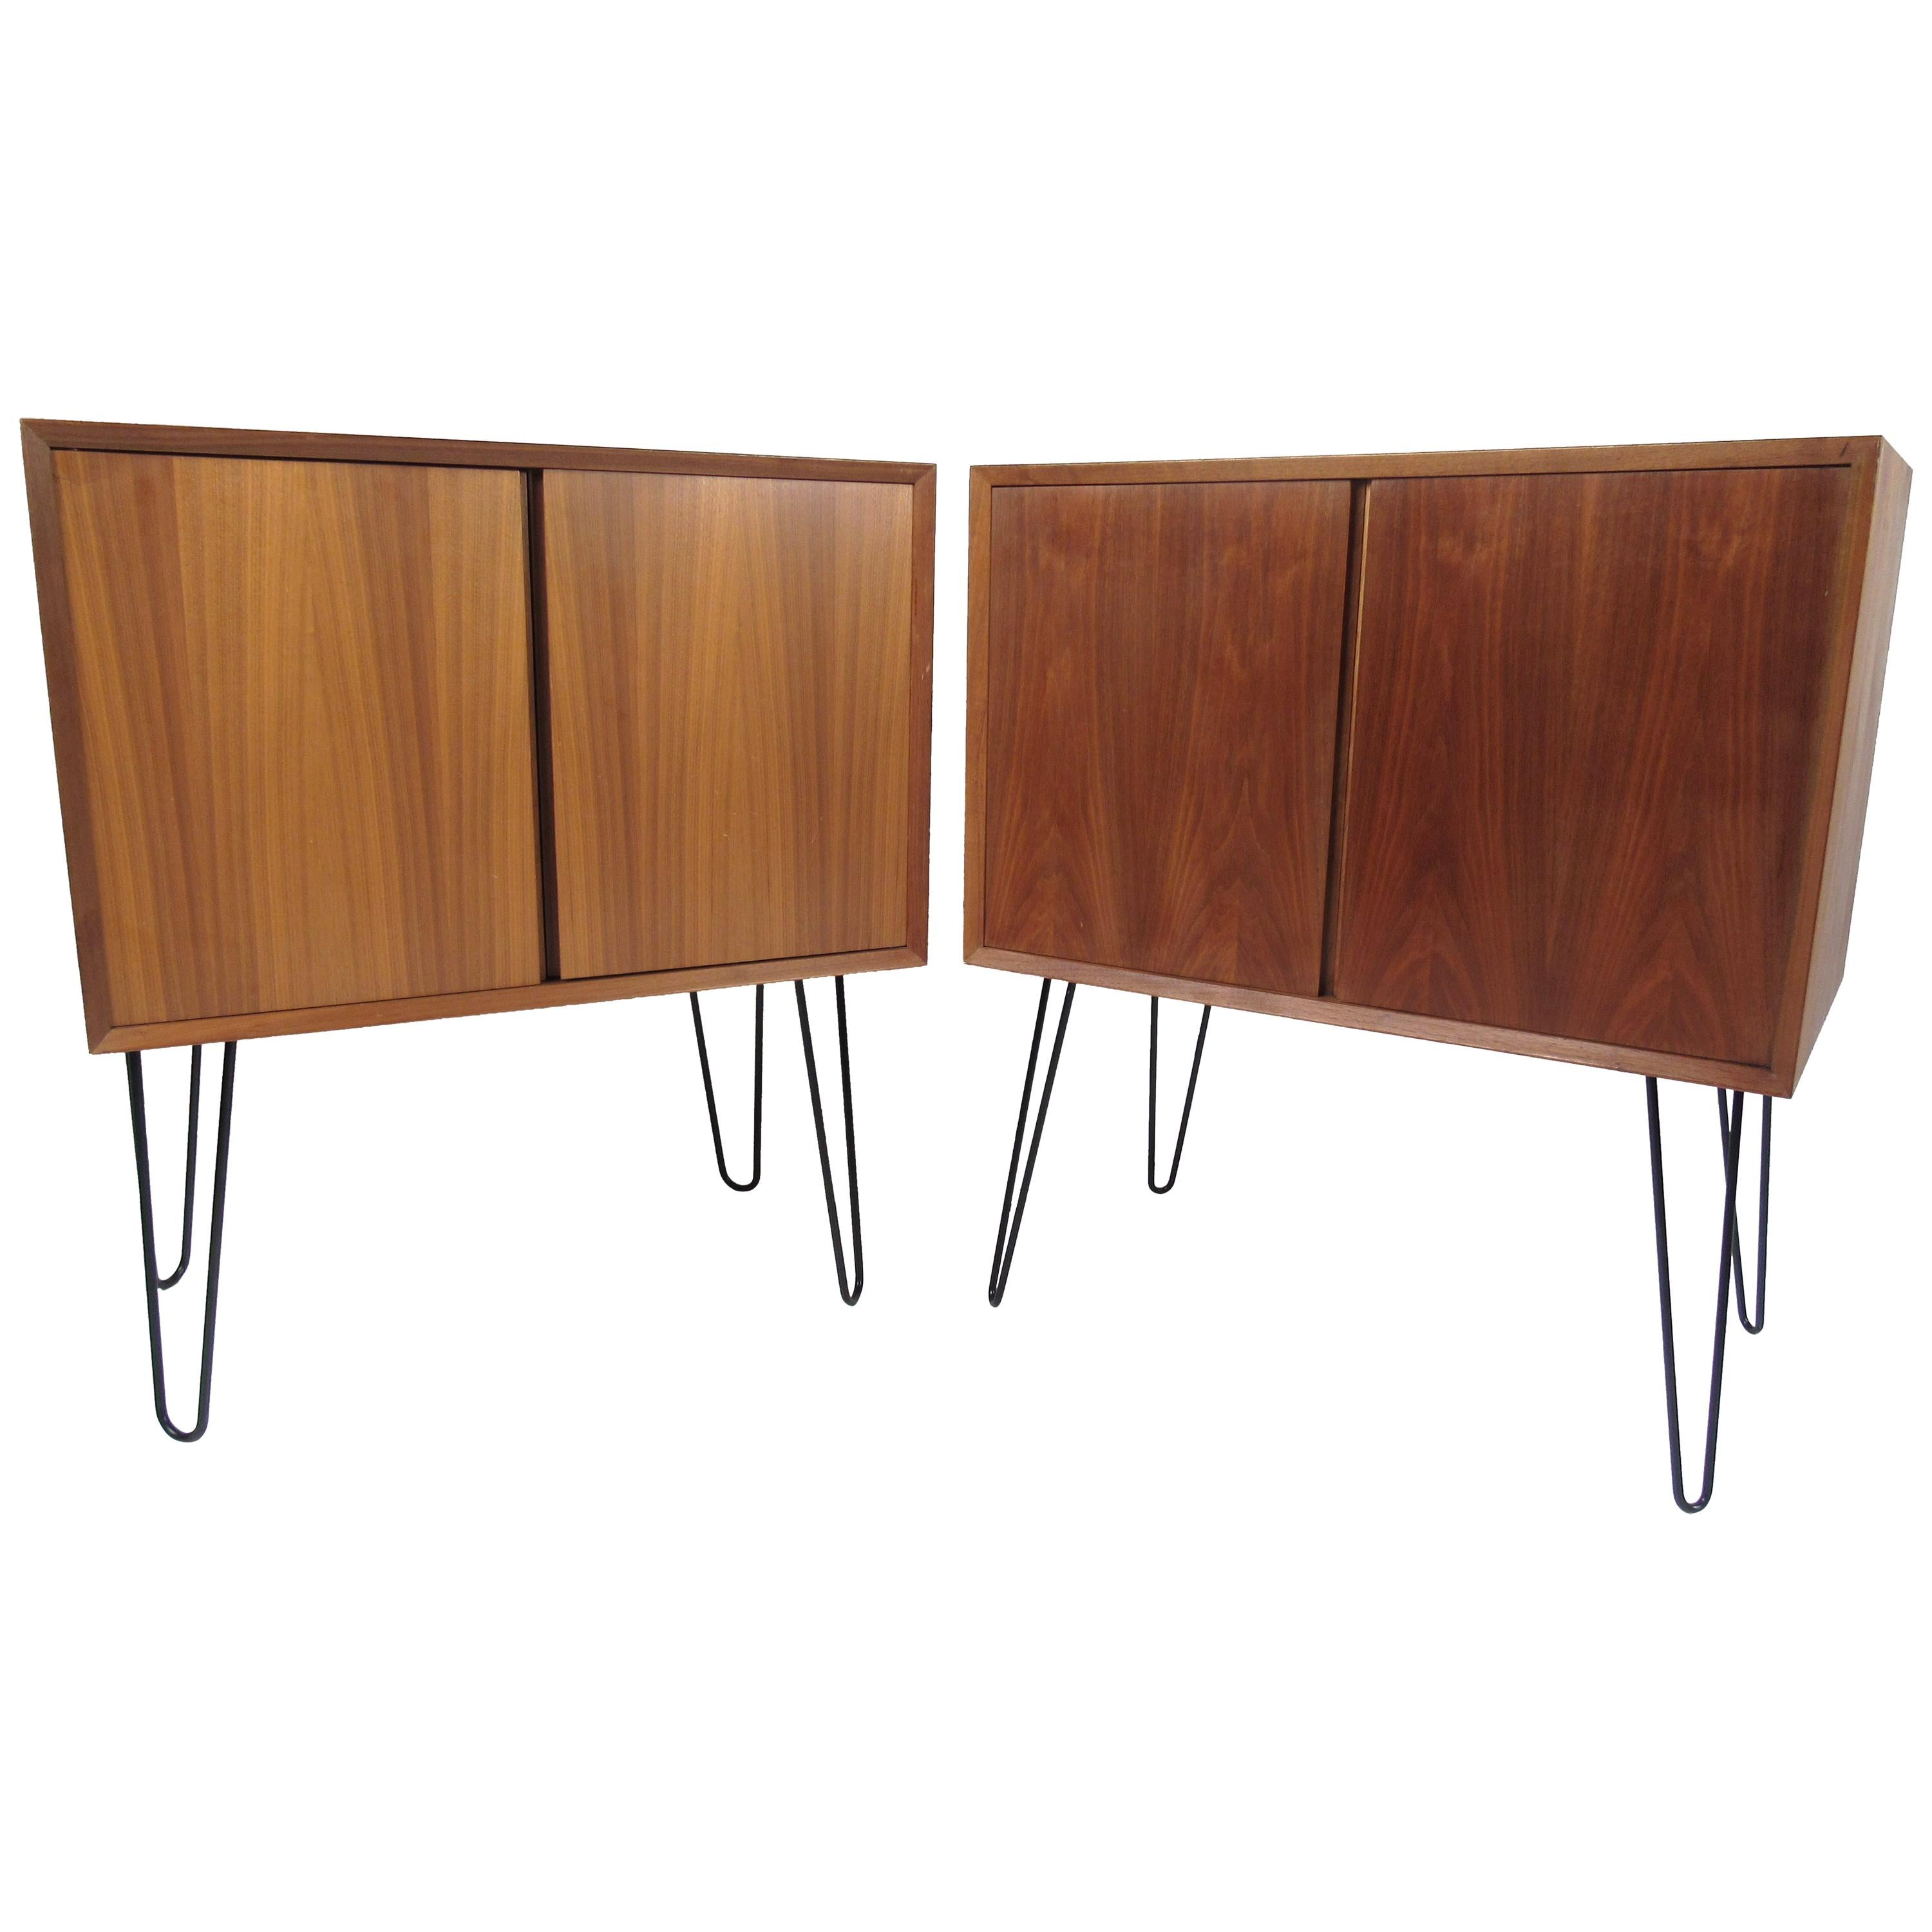 Pair of Midcentury Teak Cabinets with Hairpin Legs